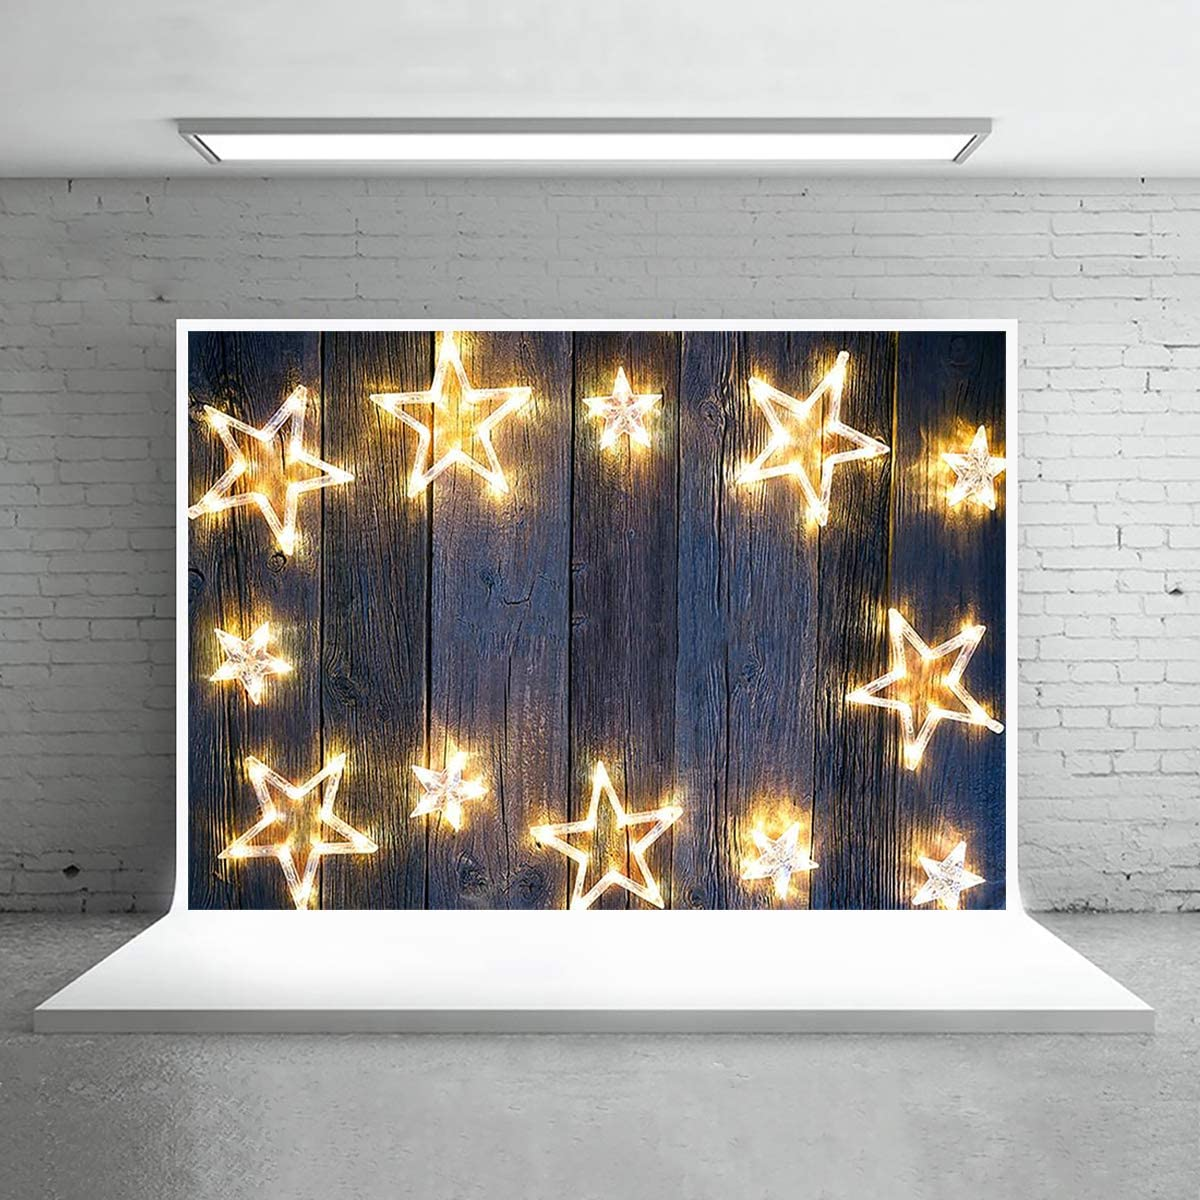 TCReal Lighting Background Banner Photography Studio Night Background Birthday Family Party Holiday Celebration Romantic Wedding Photography Backdrop Home Decoration 10x8ft,chy025